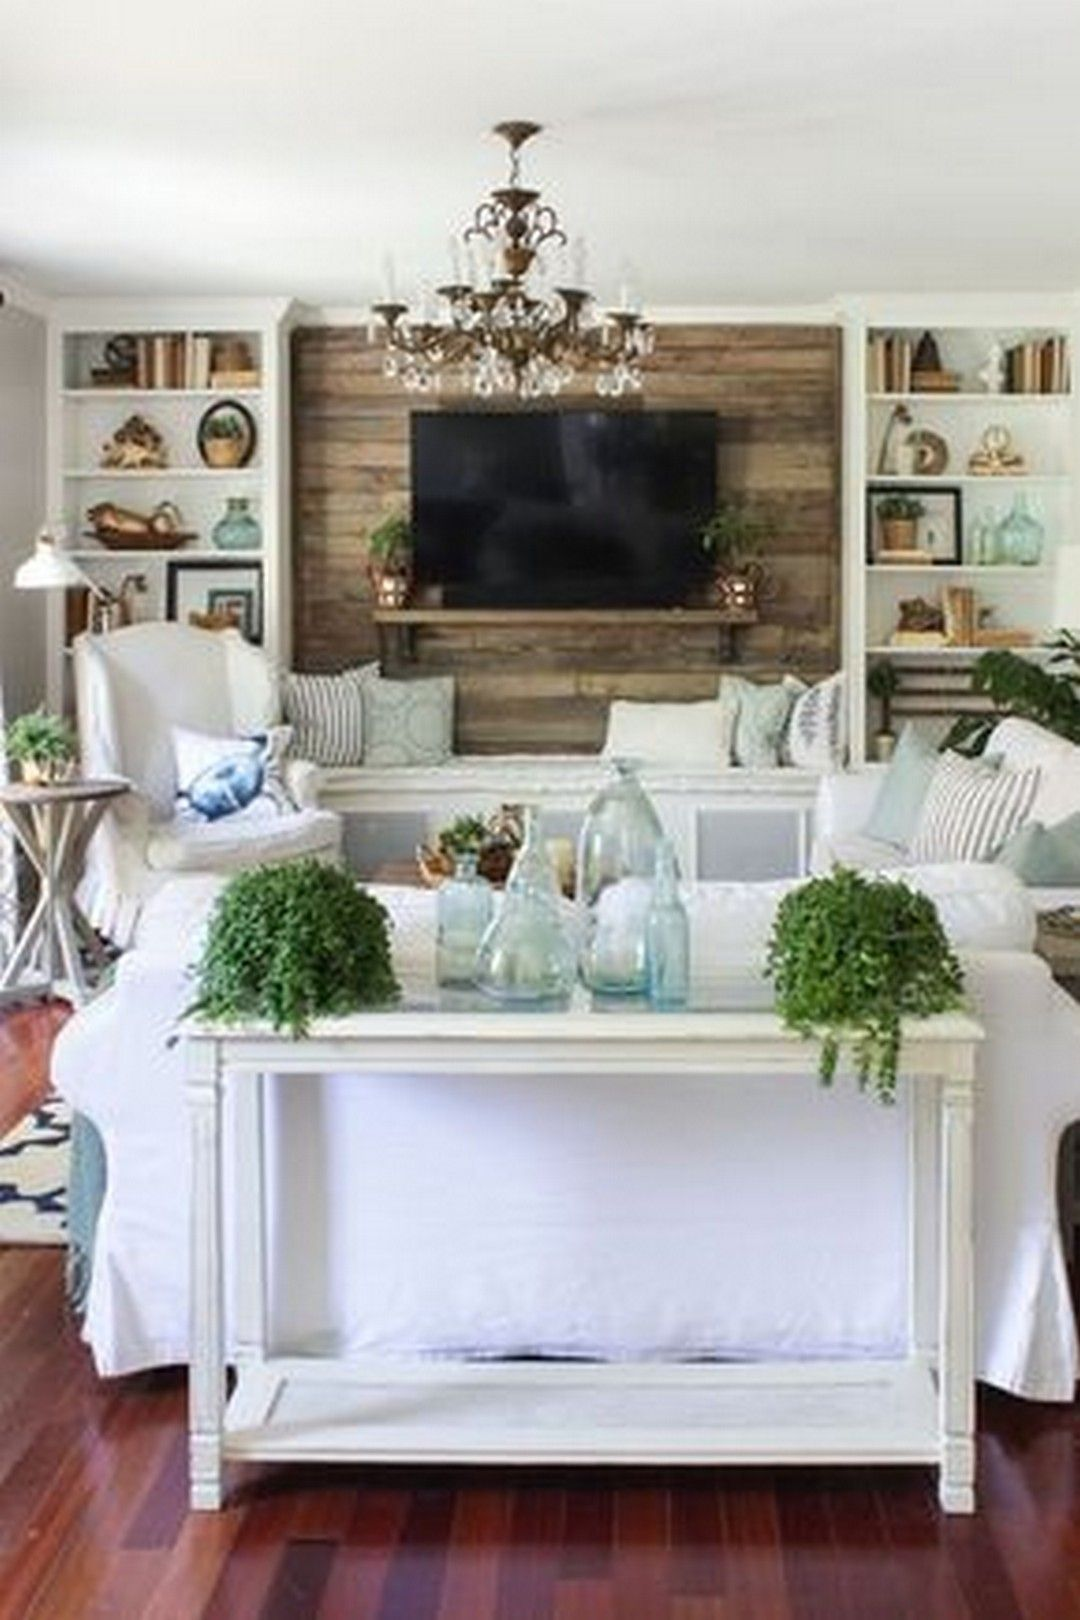 14 Marvelous Rustic Costal Home Decorating Ideas